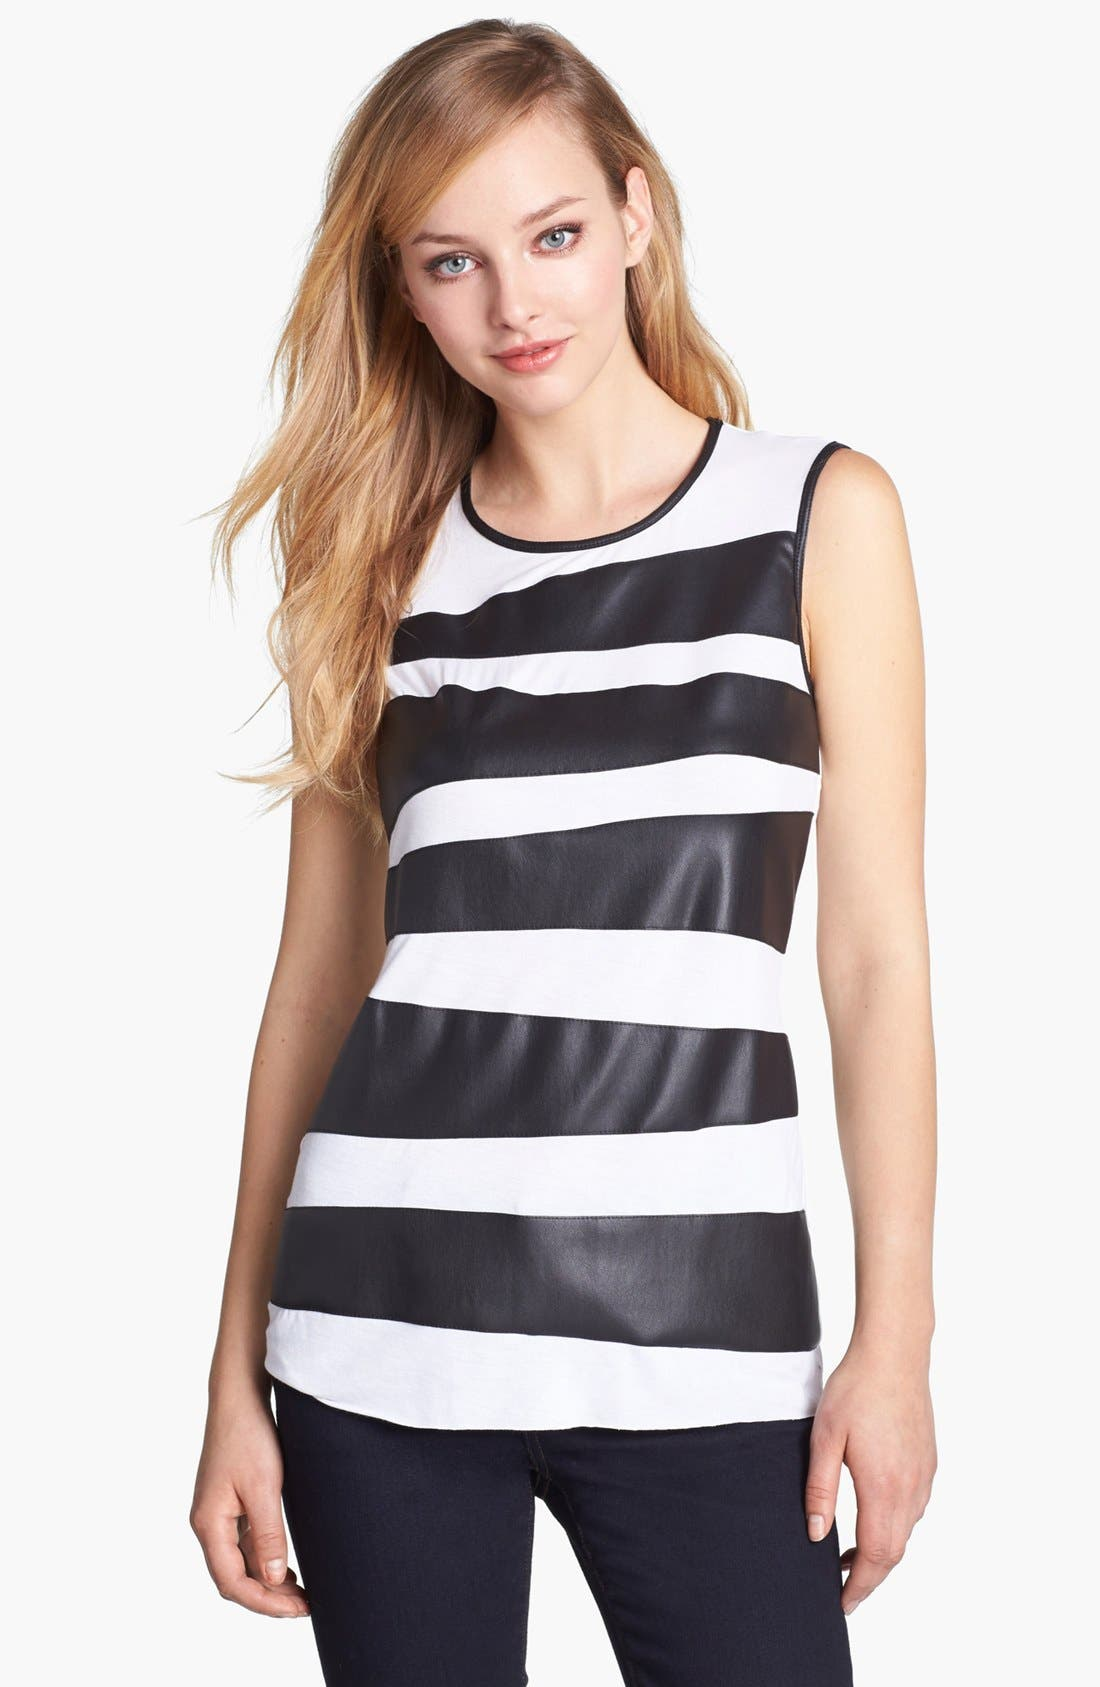 Alternate Image 1 Selected - Vince Camuto Faux Leather Zigzag Tank (Regular & Petite)